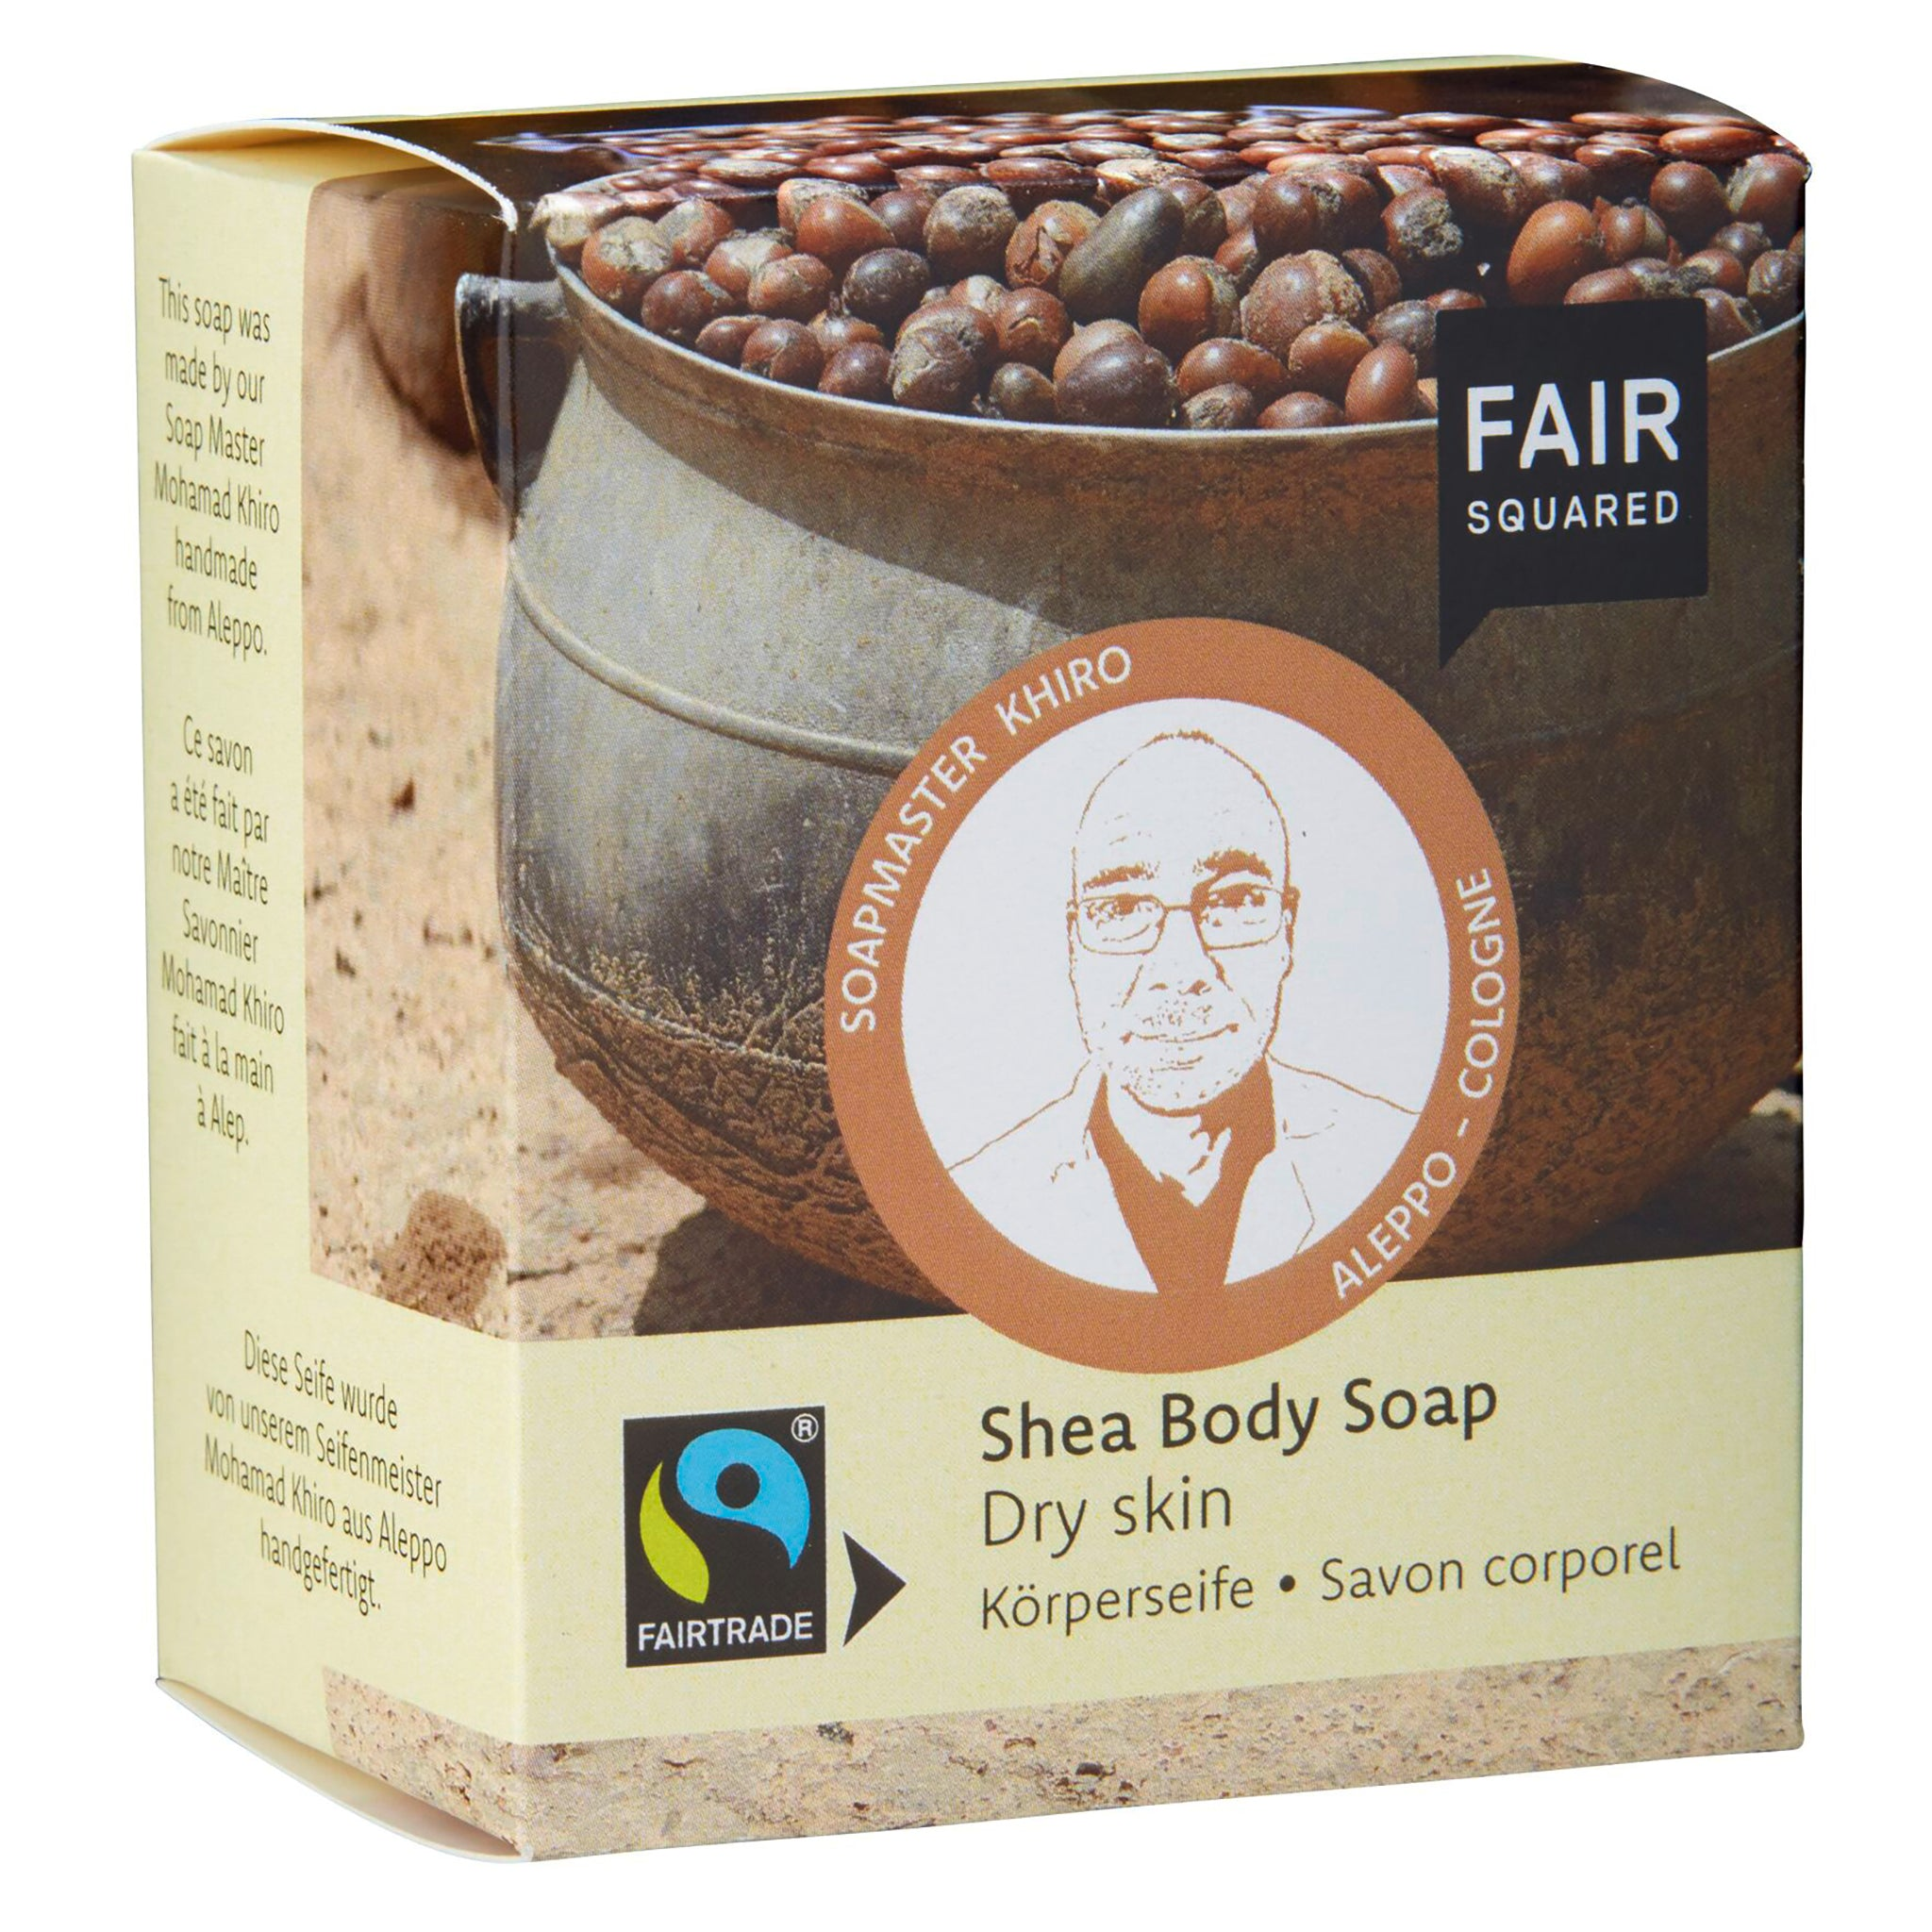 Shea Body Soap with Cotton Soap Bag - For Dry Skin